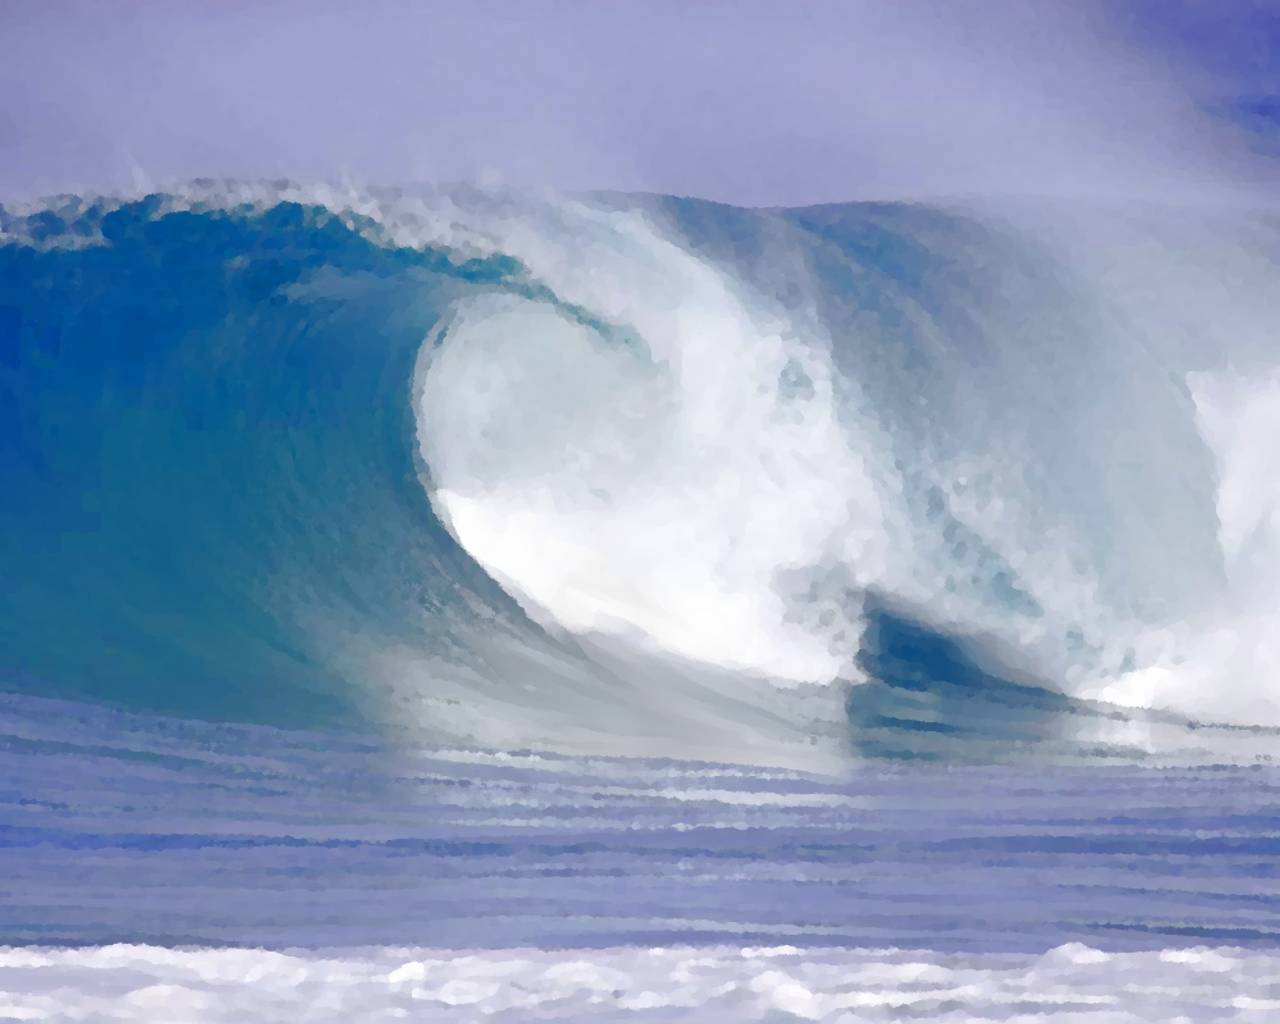 Background Wallpaper Image: Cresting Wave Painting